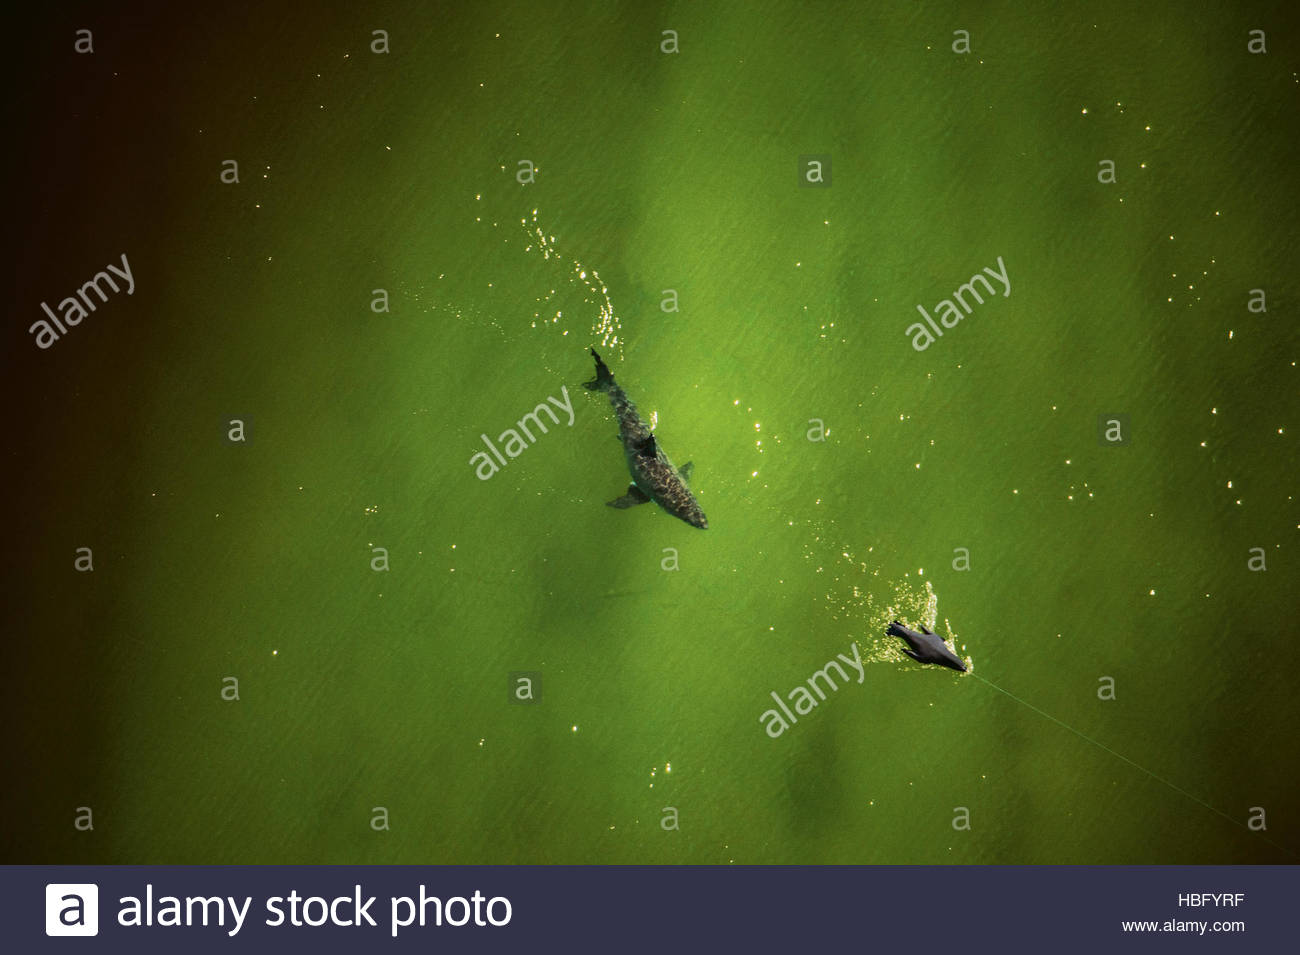 A seal decoy is used in a great white shark predation study in the waters off Cape Cod. - Stock Image